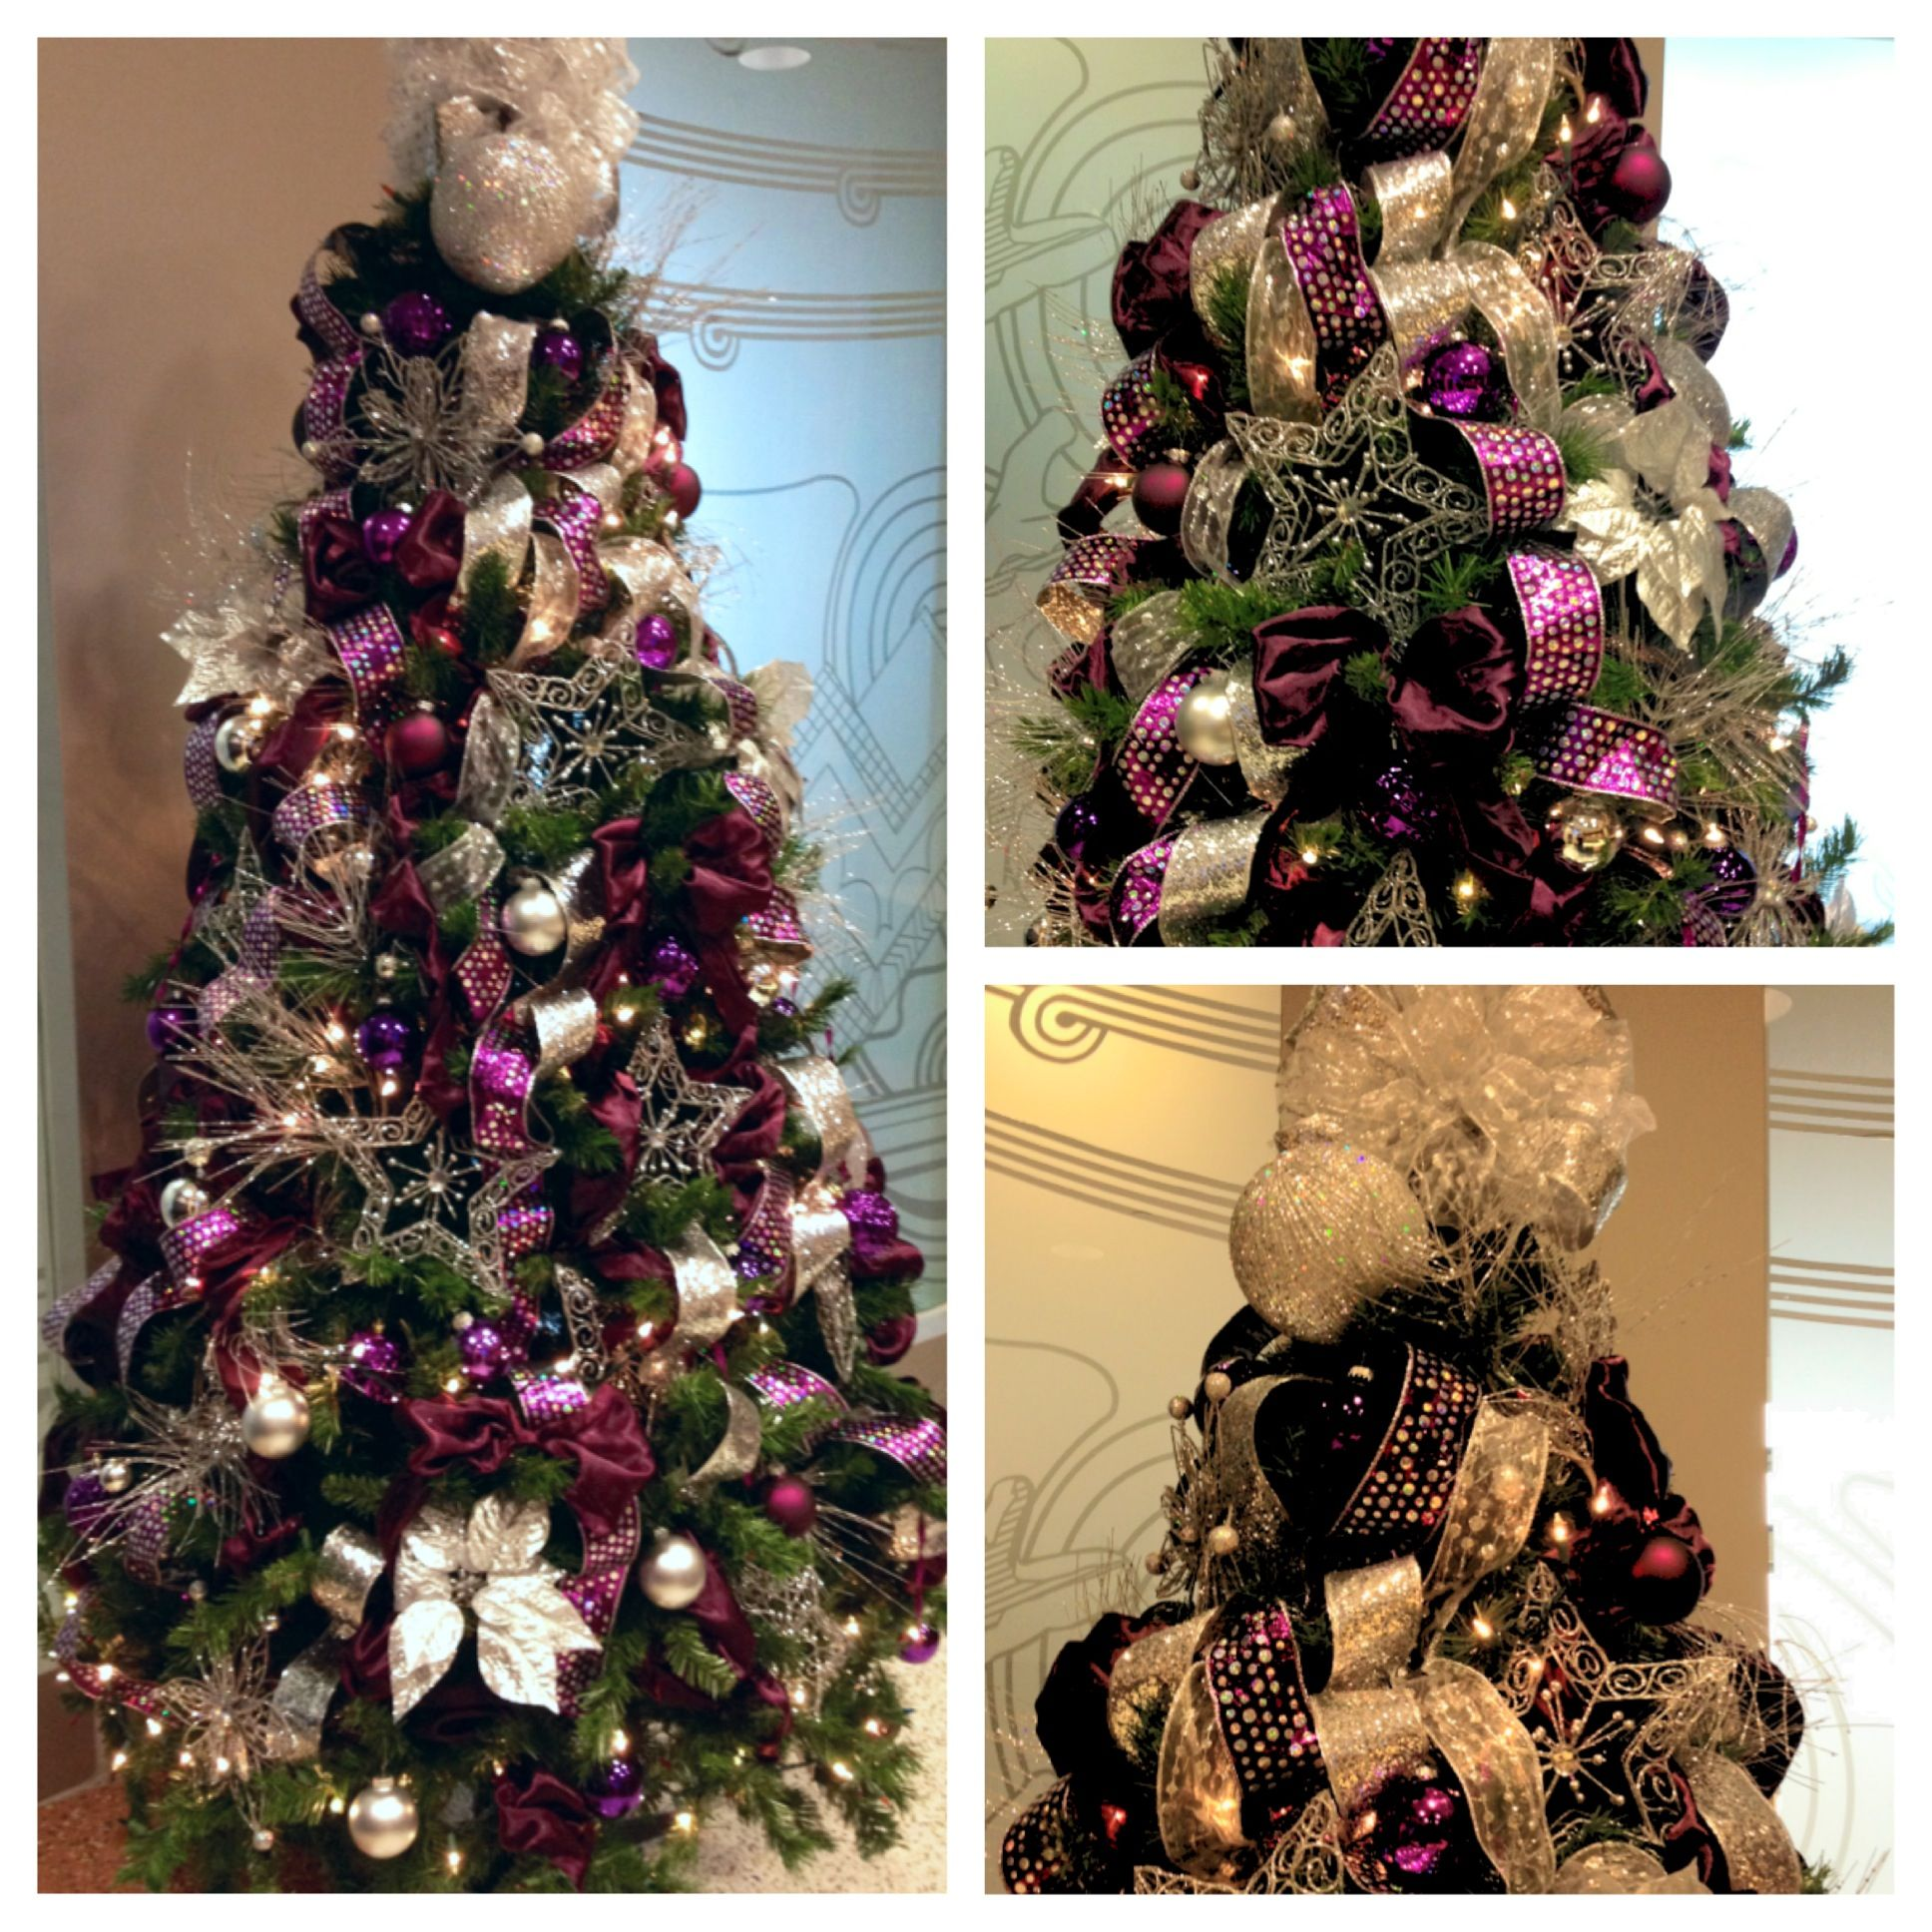 Christmas Decorations In Purple: Plum And Silver Christmas Tree!